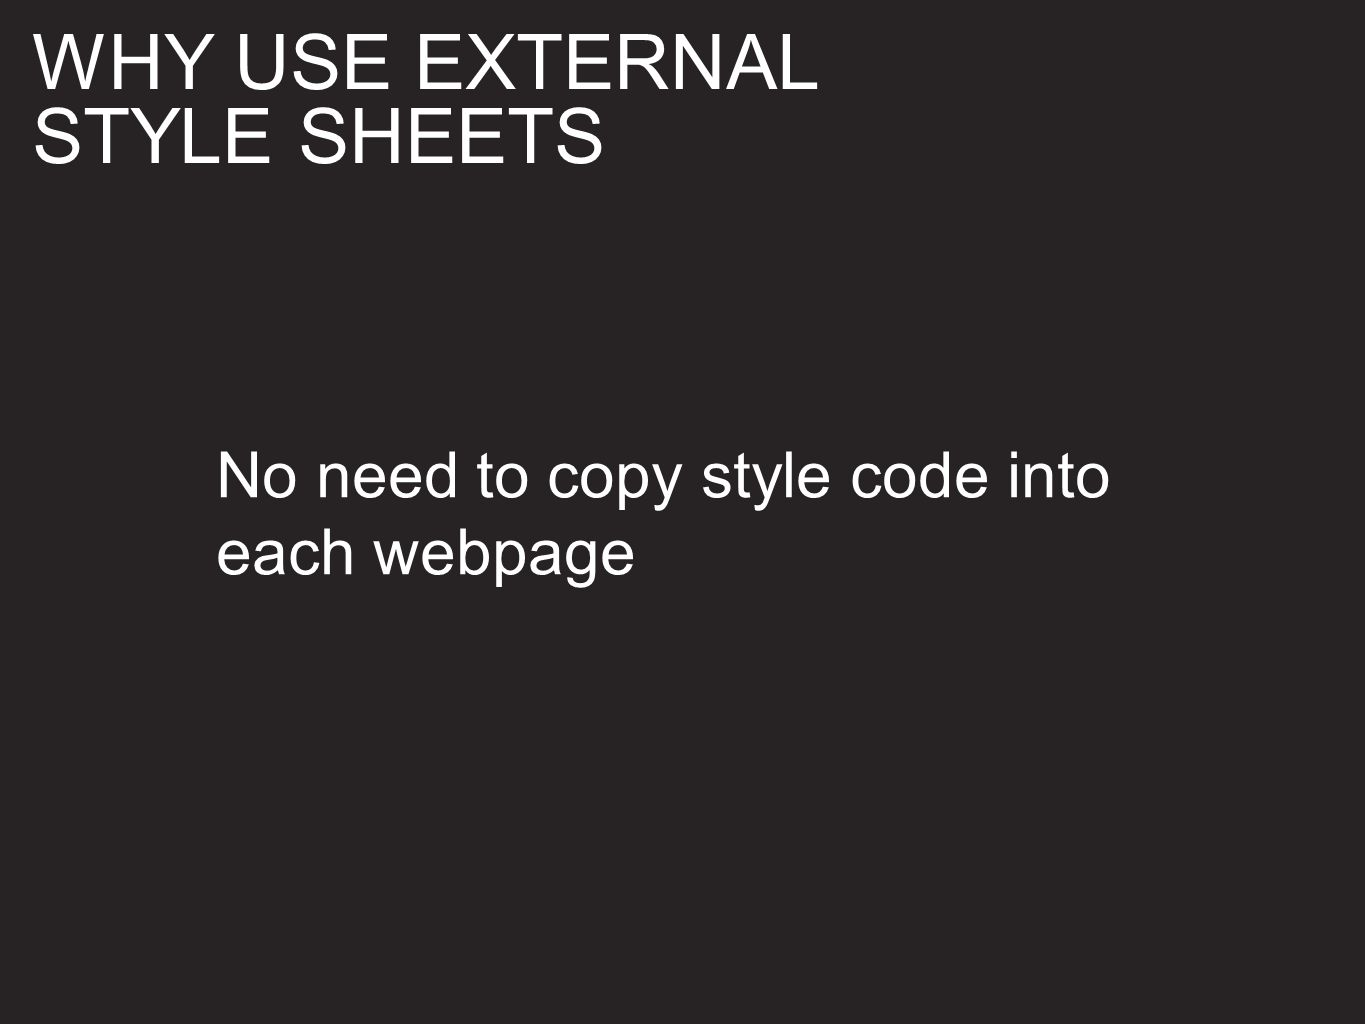 No need to copy style code into each webpage WHY USE EXTERNAL STYLE SHEETS